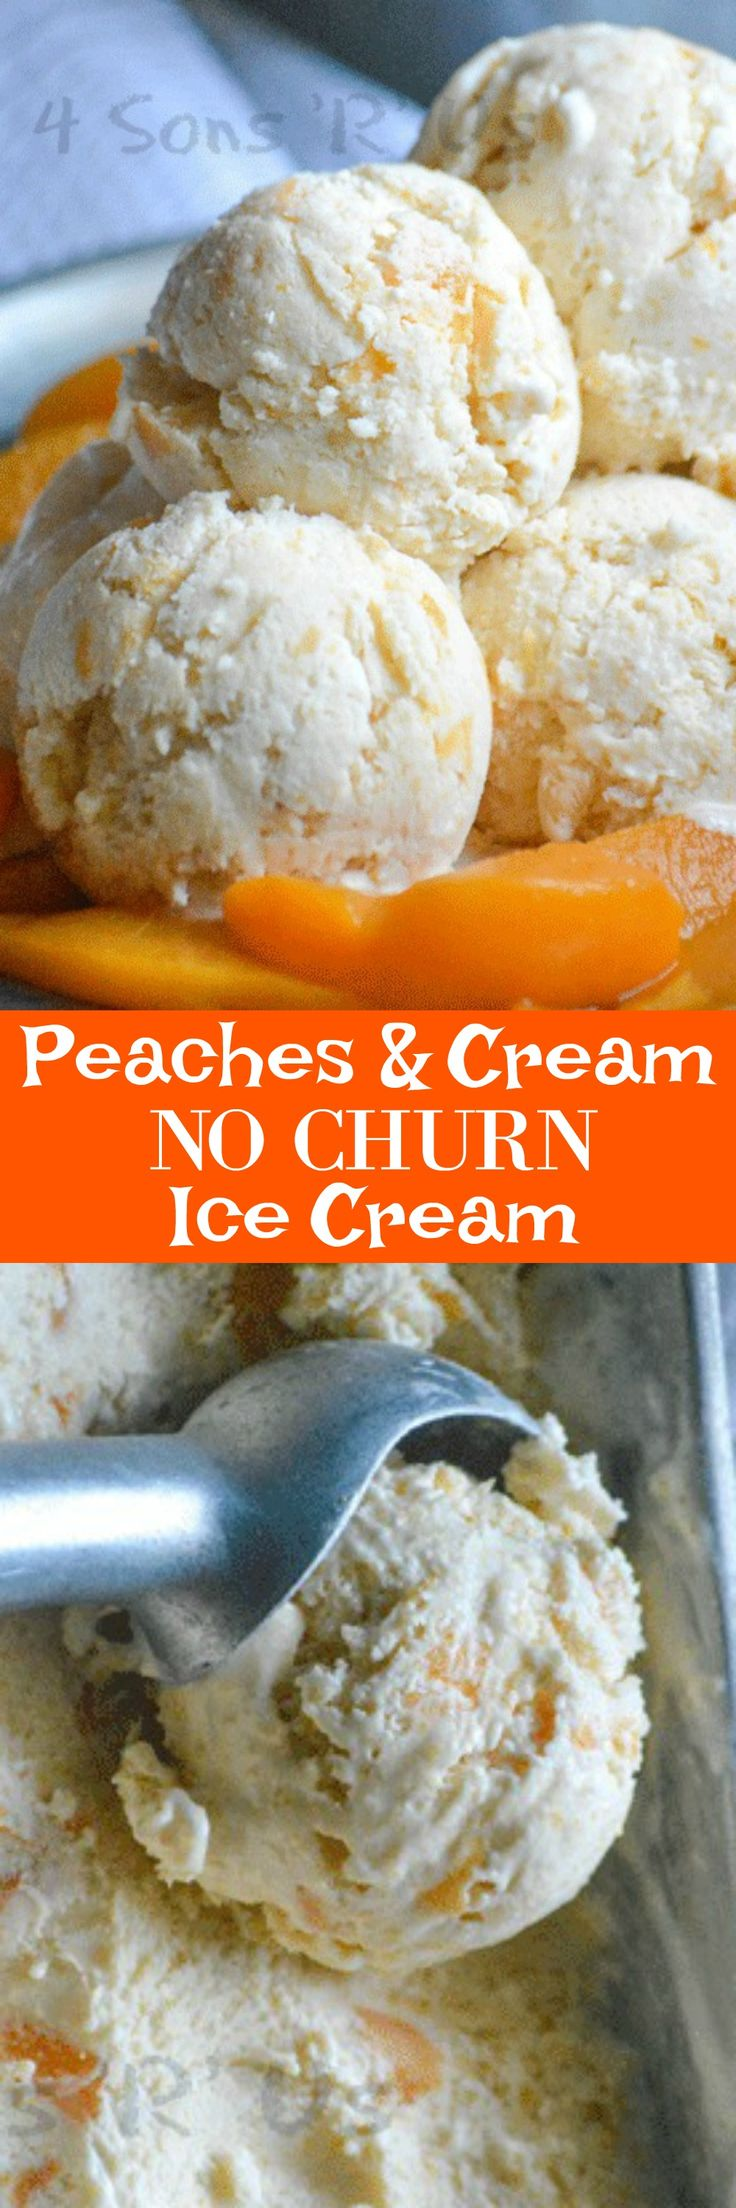 This post is sponsored in conjunction with #SummerDessertWeek. I received product samples from sponsor companies to aid in the creation of the recipes, but as always all opinions are 100% mine alone. A rich and creamy dessert, thisPeaches & Cream No Churn Ice Cream features the perfect pairing of fresh[Read more]